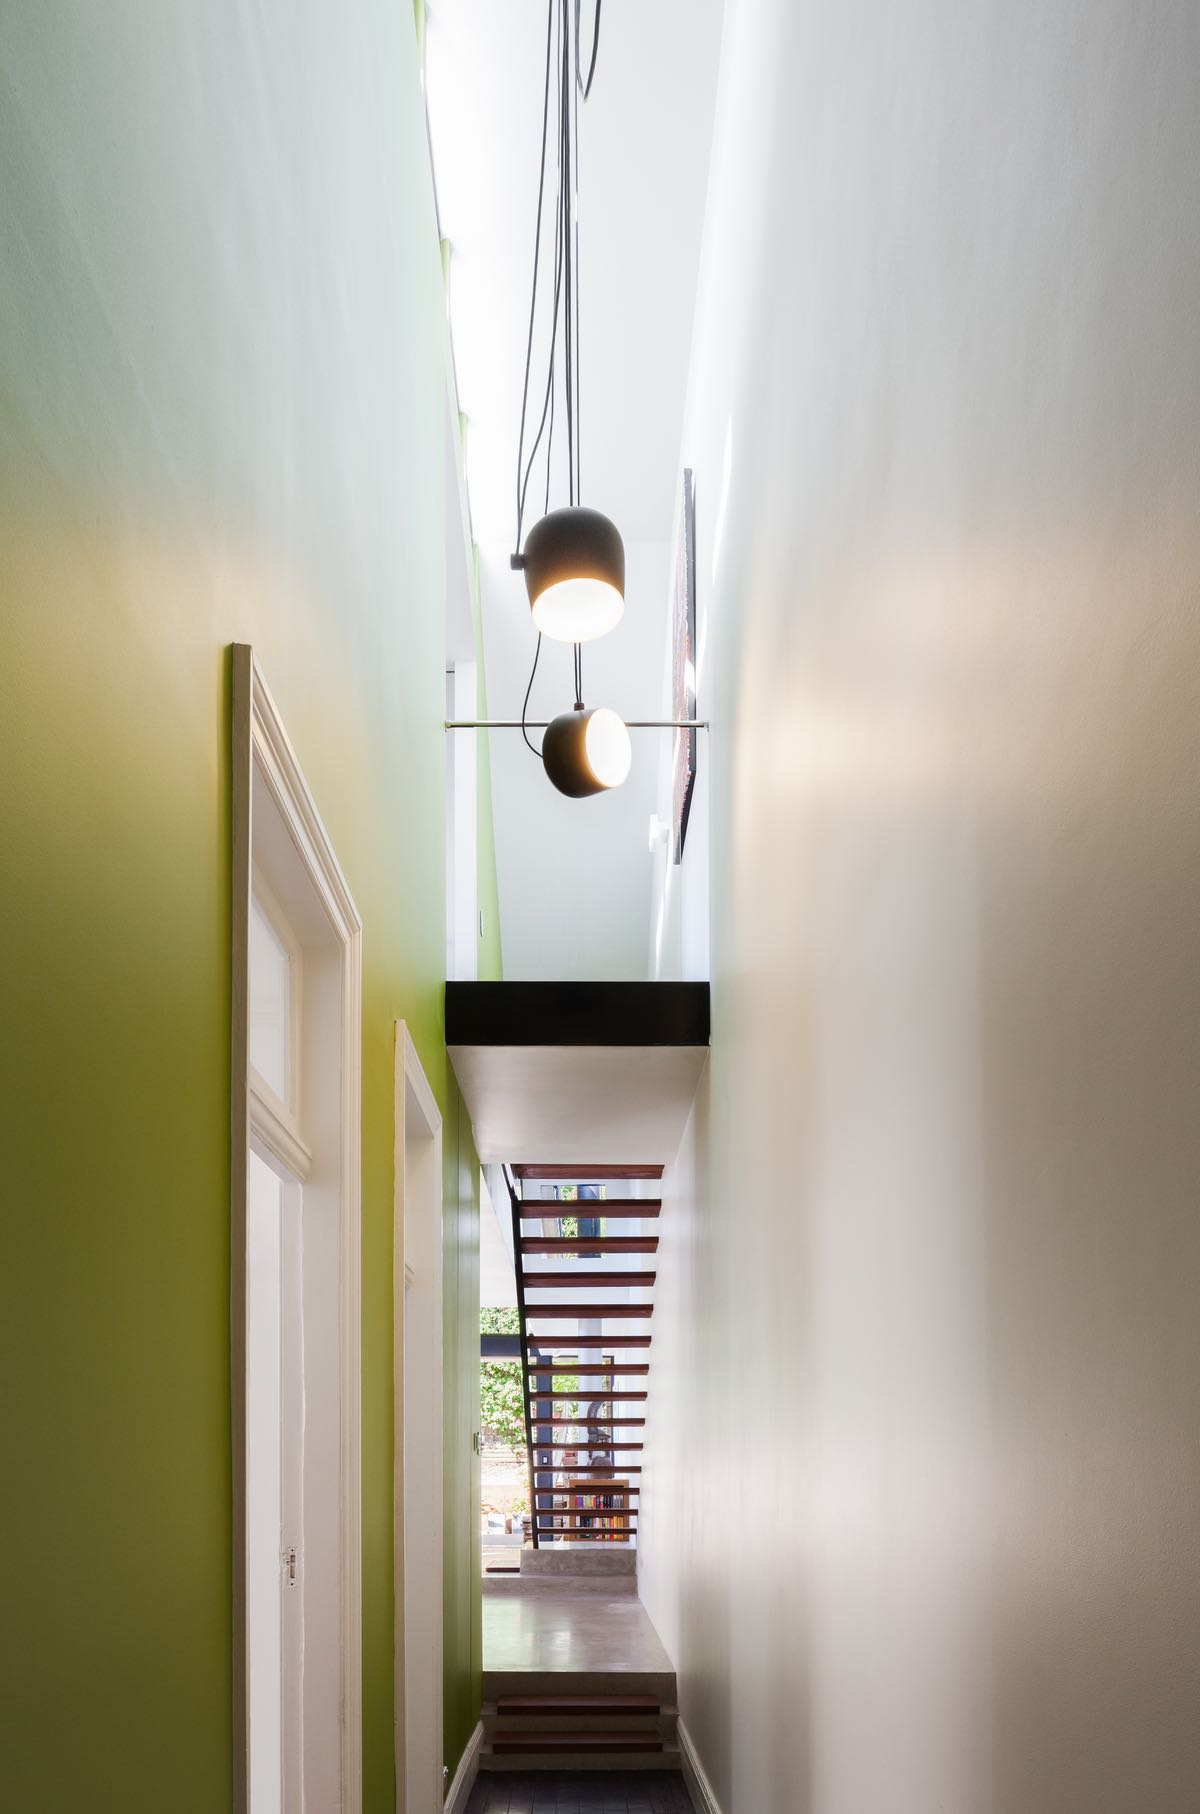 The large pendant lamp hanged over corridor